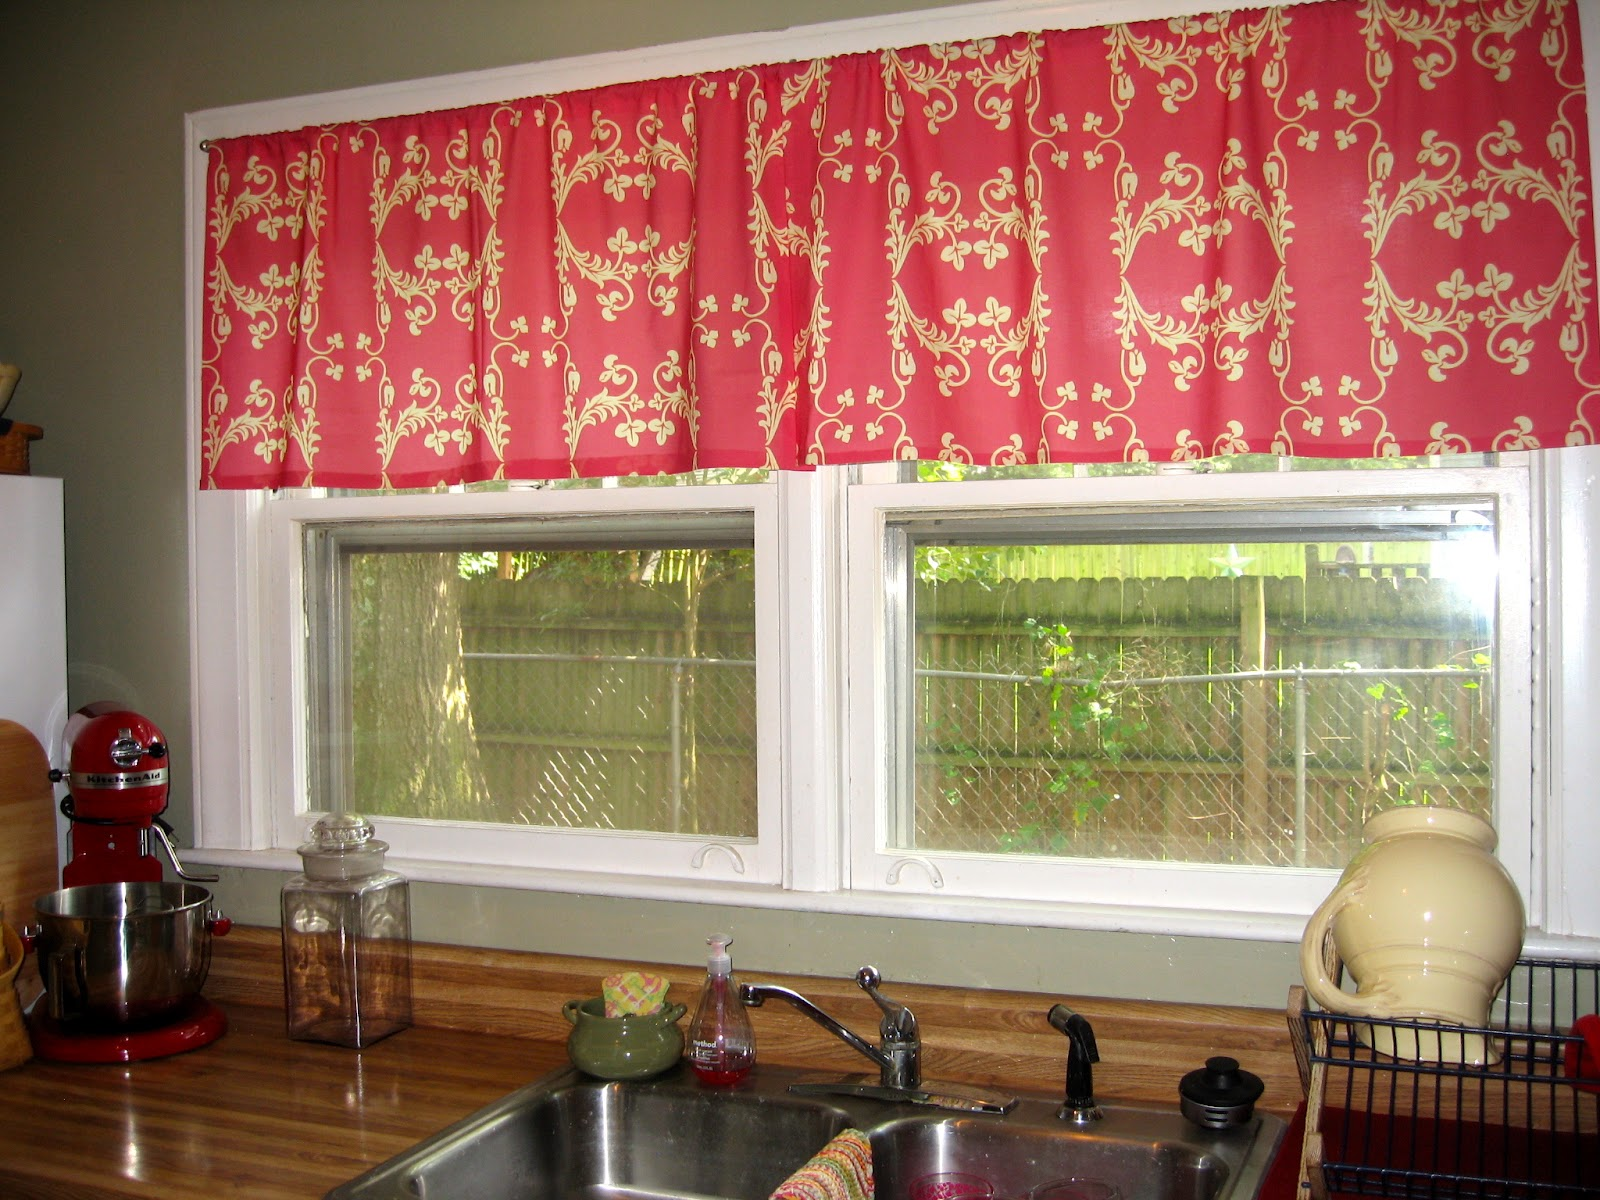 Kitchen Window Curtain Idea in red floral pattern